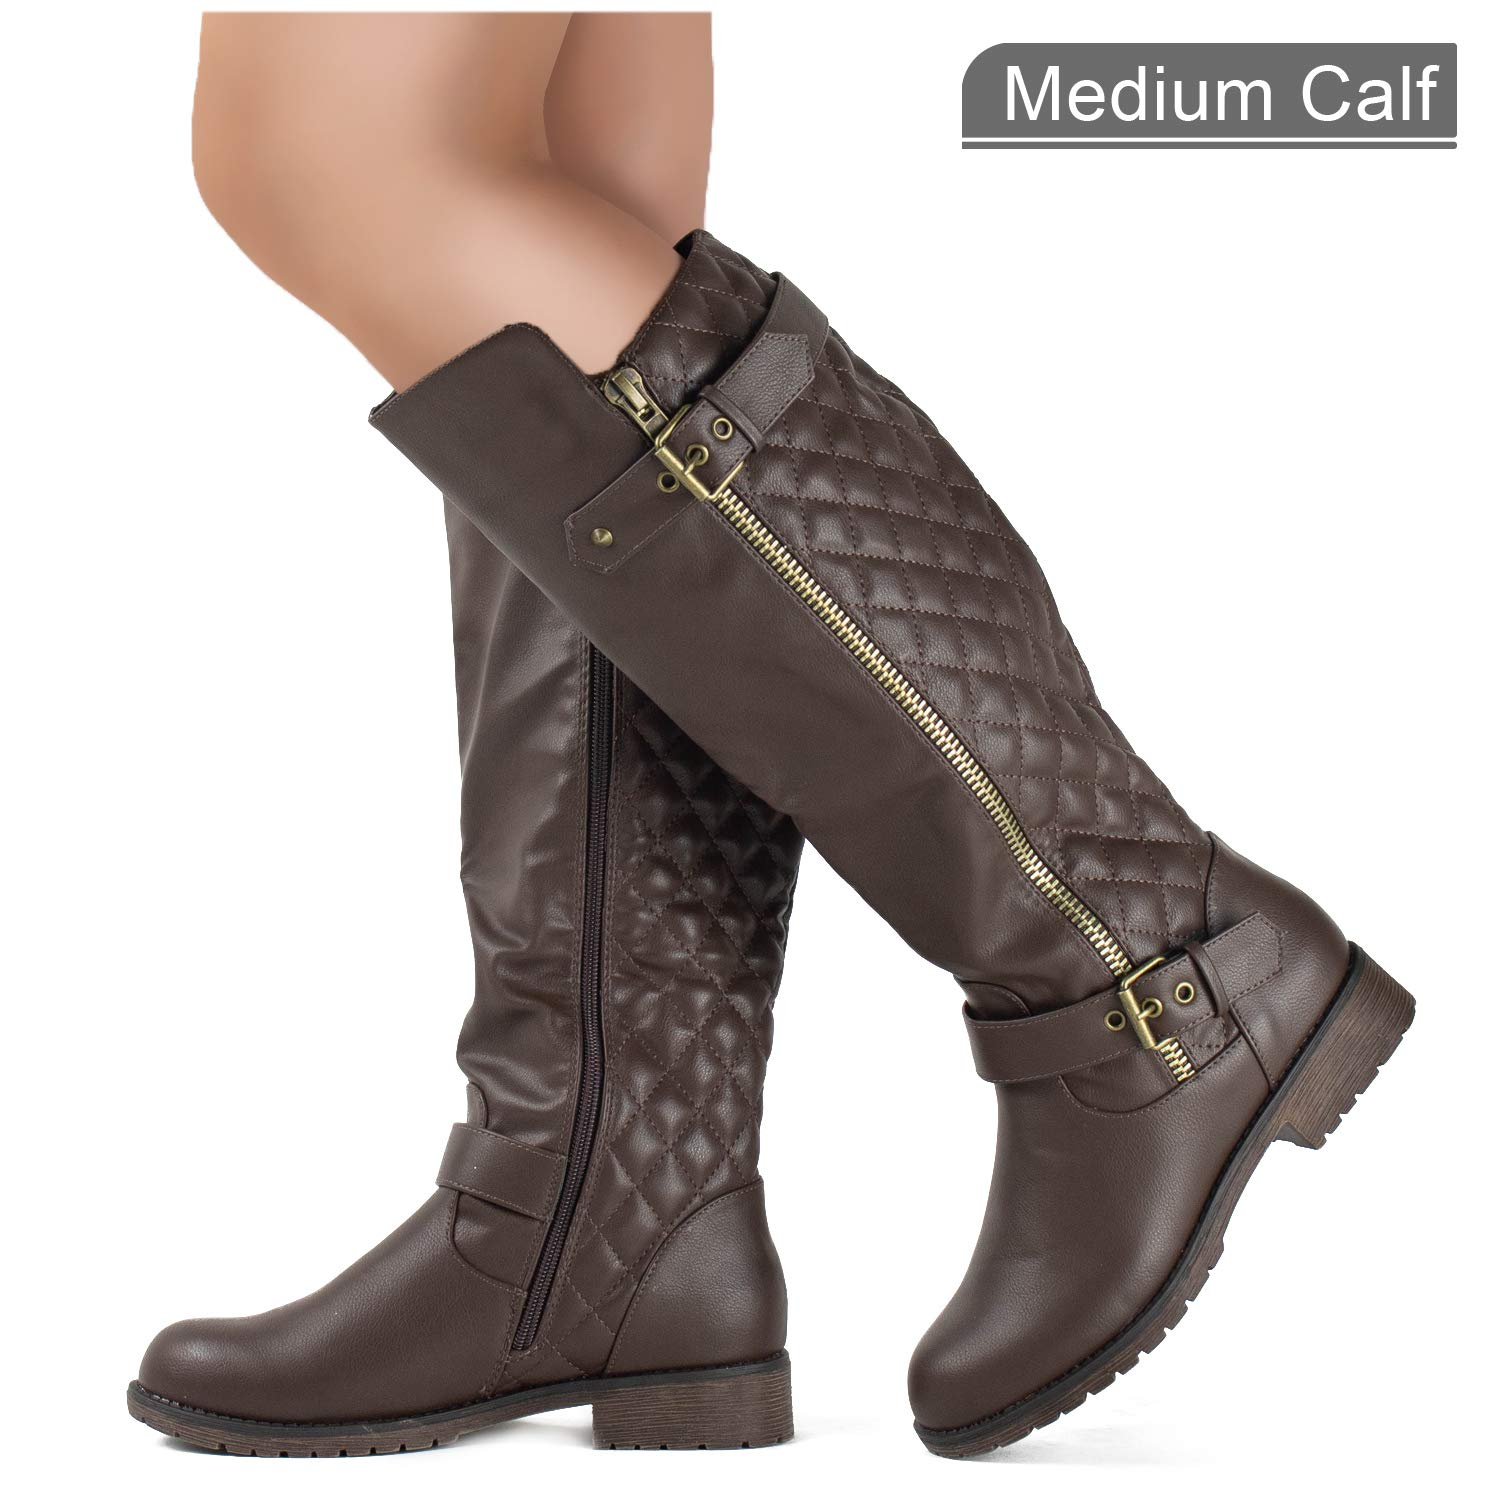 f43701d953948 ... RF ROOM OF FASHION Lady's Knee High Hidden Pocket Riding Boot (Medium  and Wide Calf) ‹Return to Previous Page. Bug Fix Sale! Previous; Next